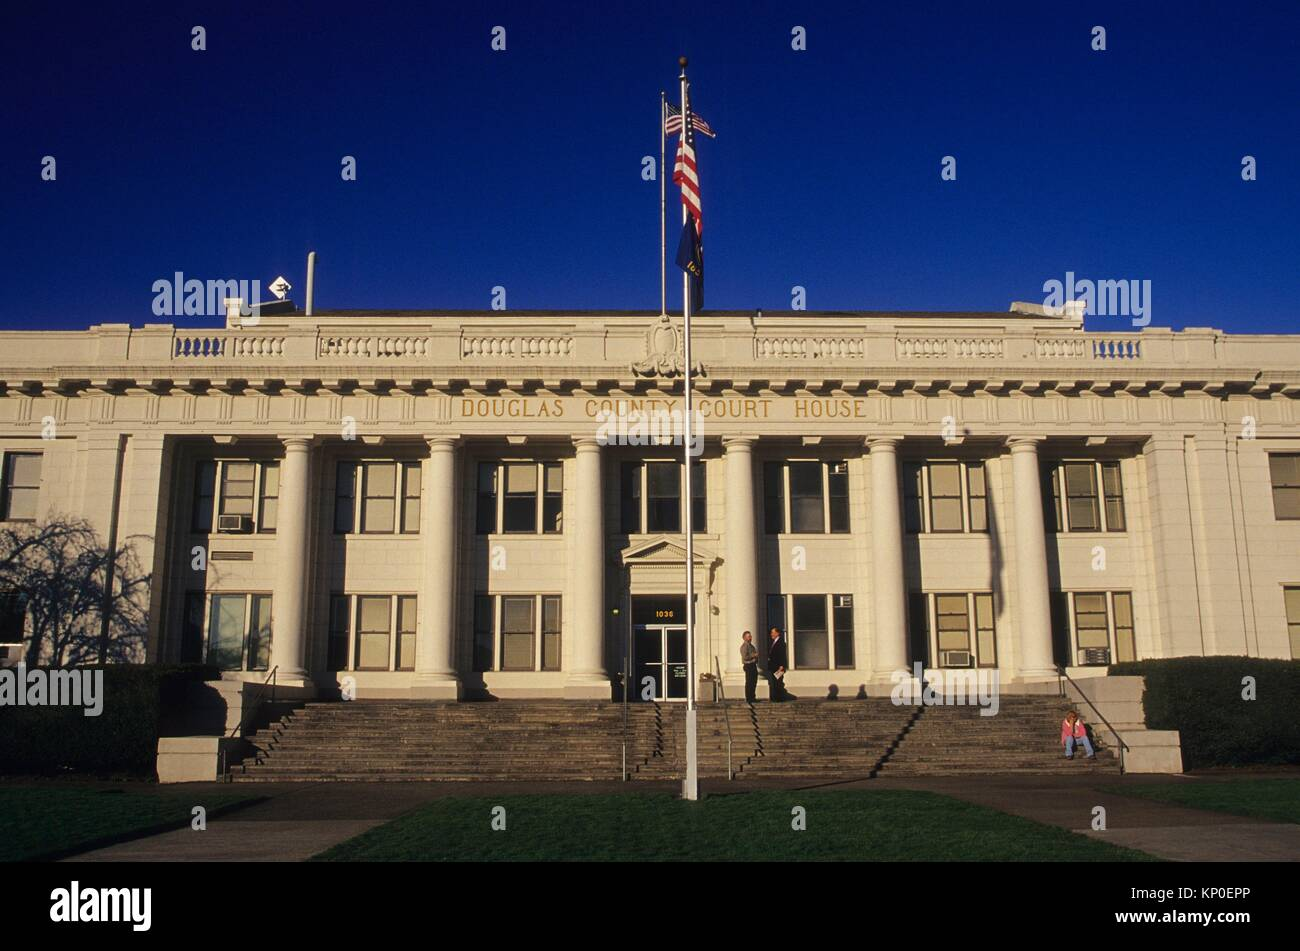 Douglas County Courthouse, Roseburg, Oregon. - Stock Image